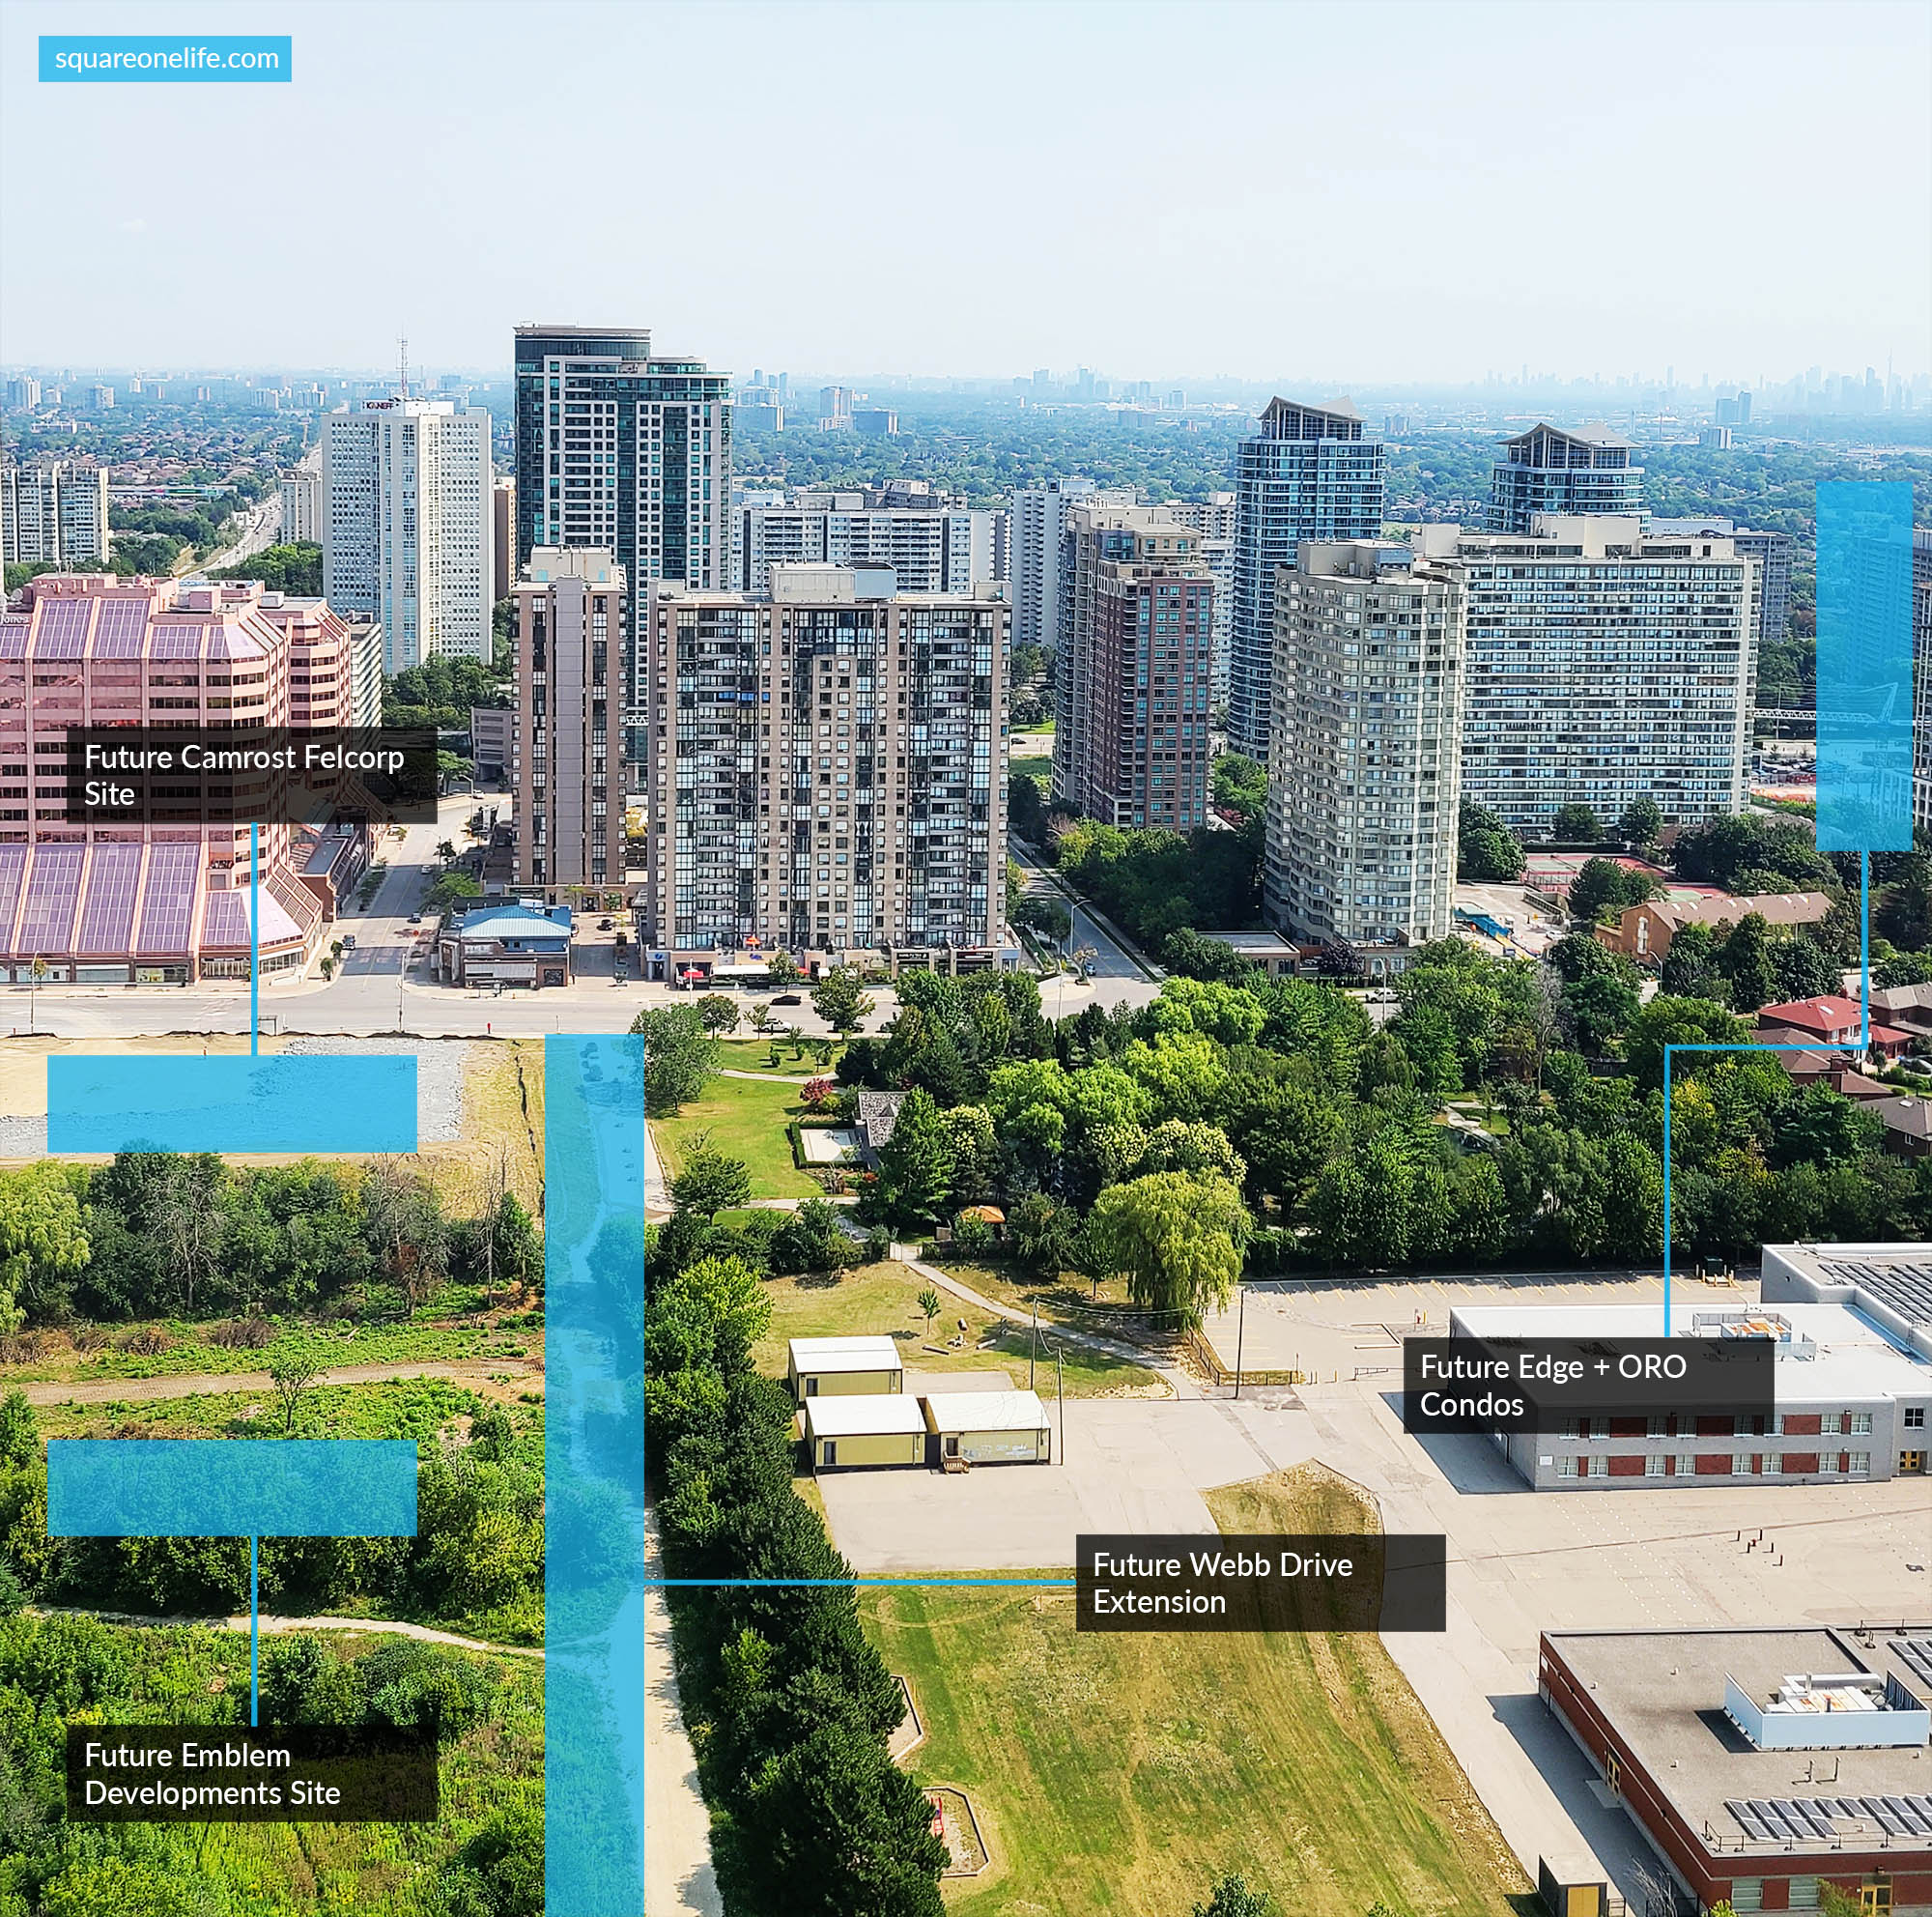 [object object] Downtown Mississauga New Condos For Sale downtown mississauga new condos for sale webb drive